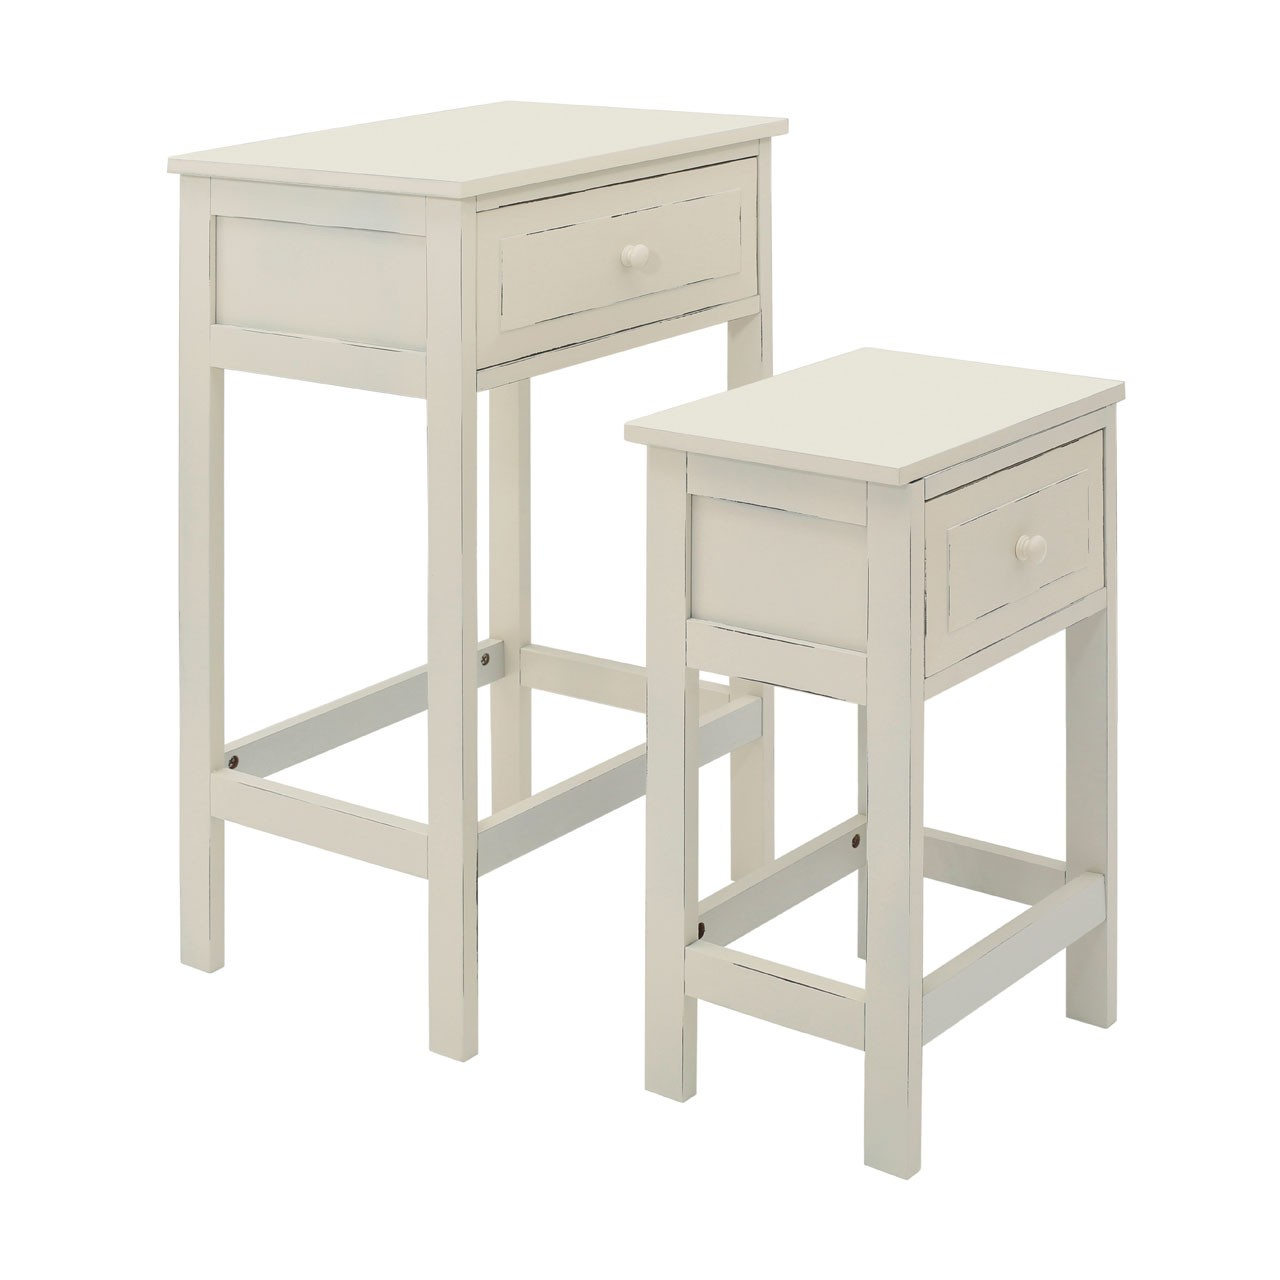 Chatelet Tables - Cream, Set of 2